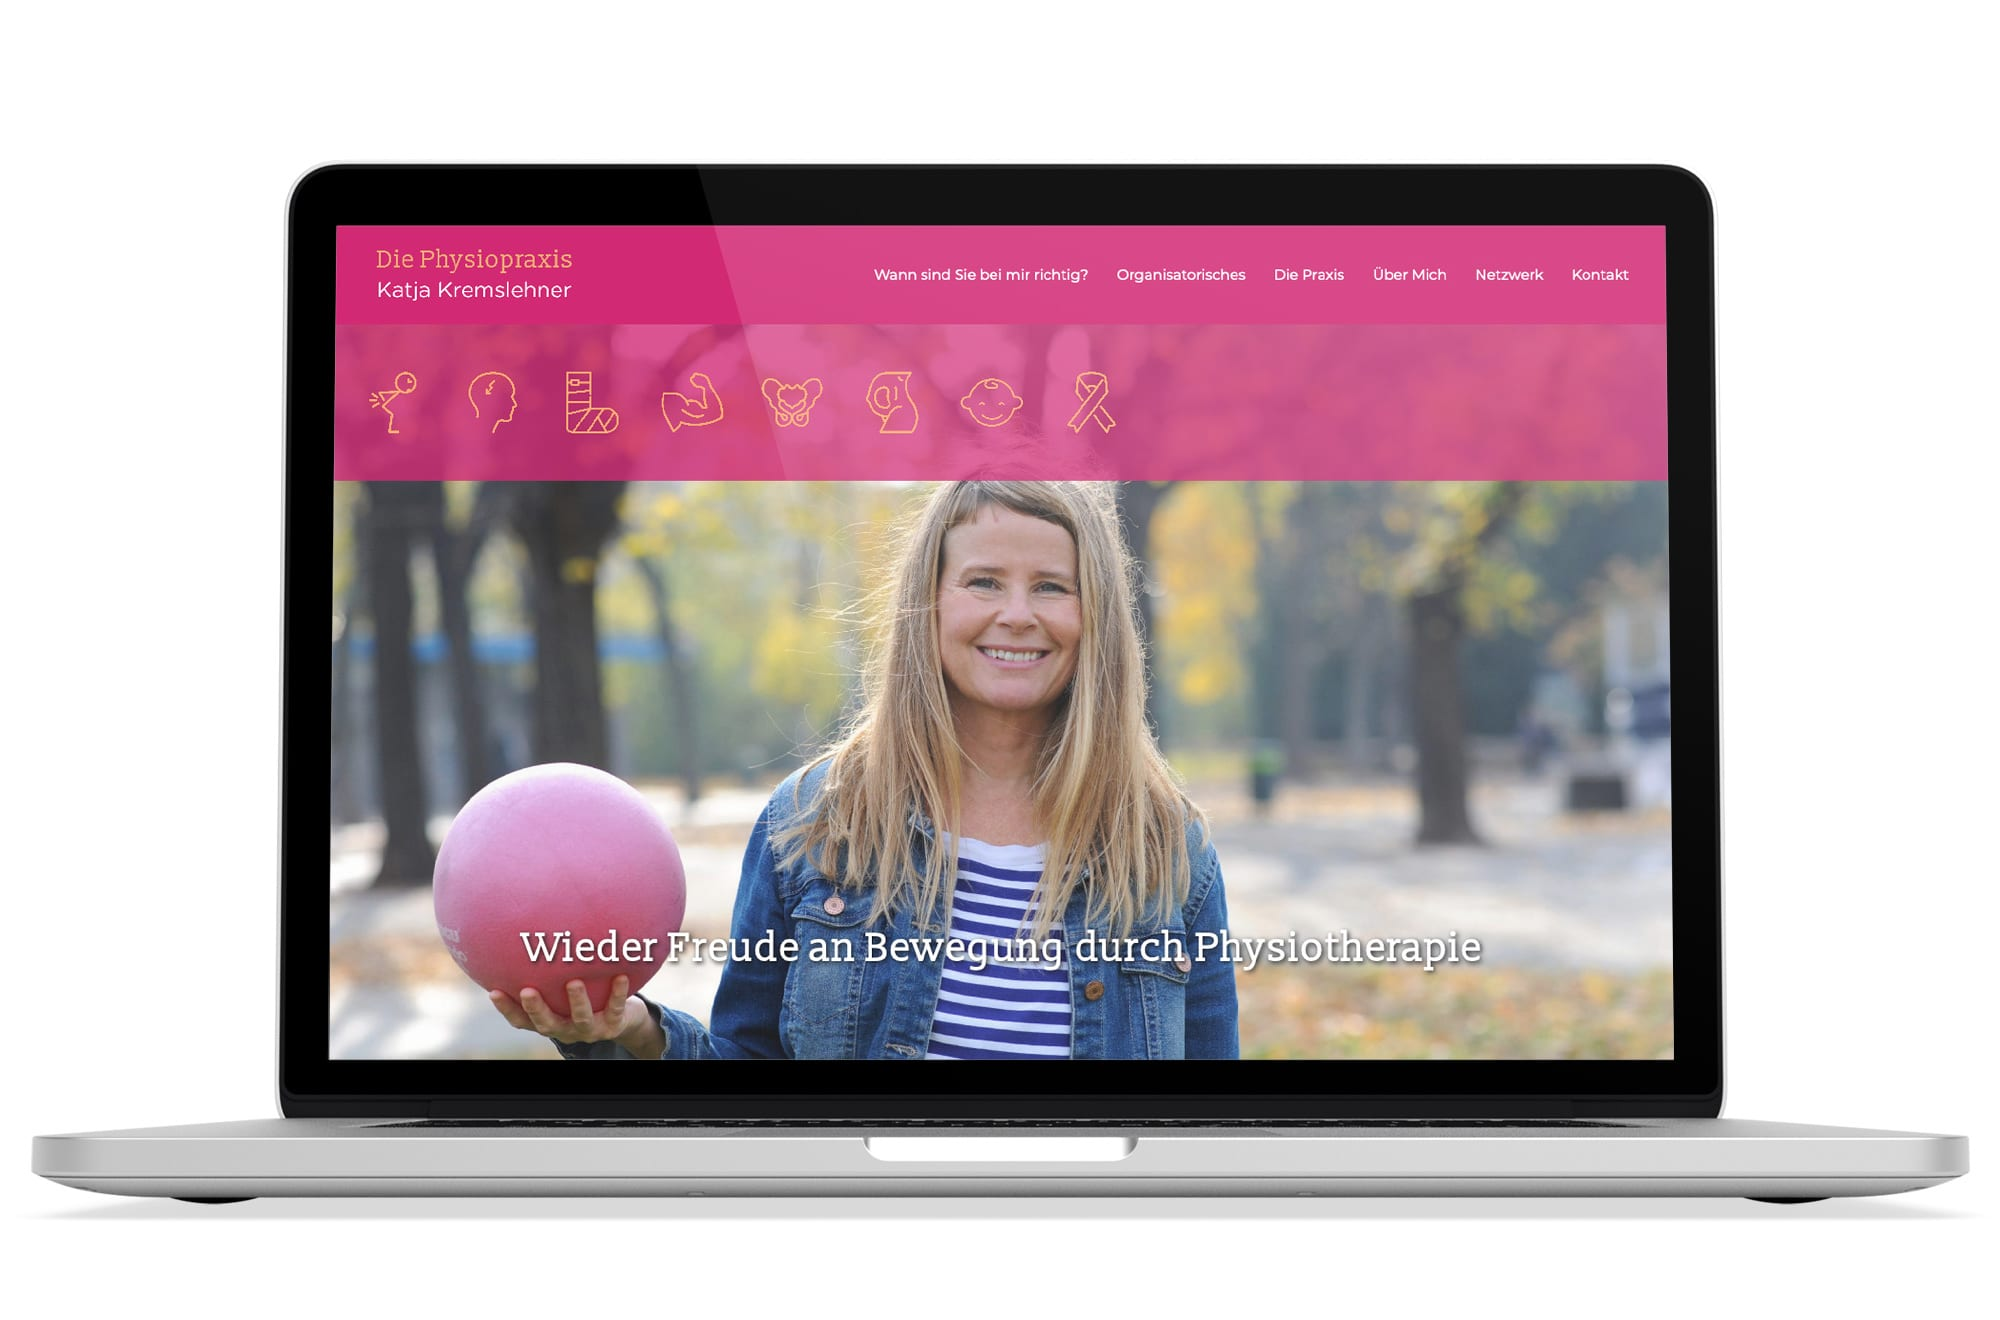 Webdesign Beispiel: Logodesign, Responsive Webdesign, WordPress für Physiotherapie in Wien